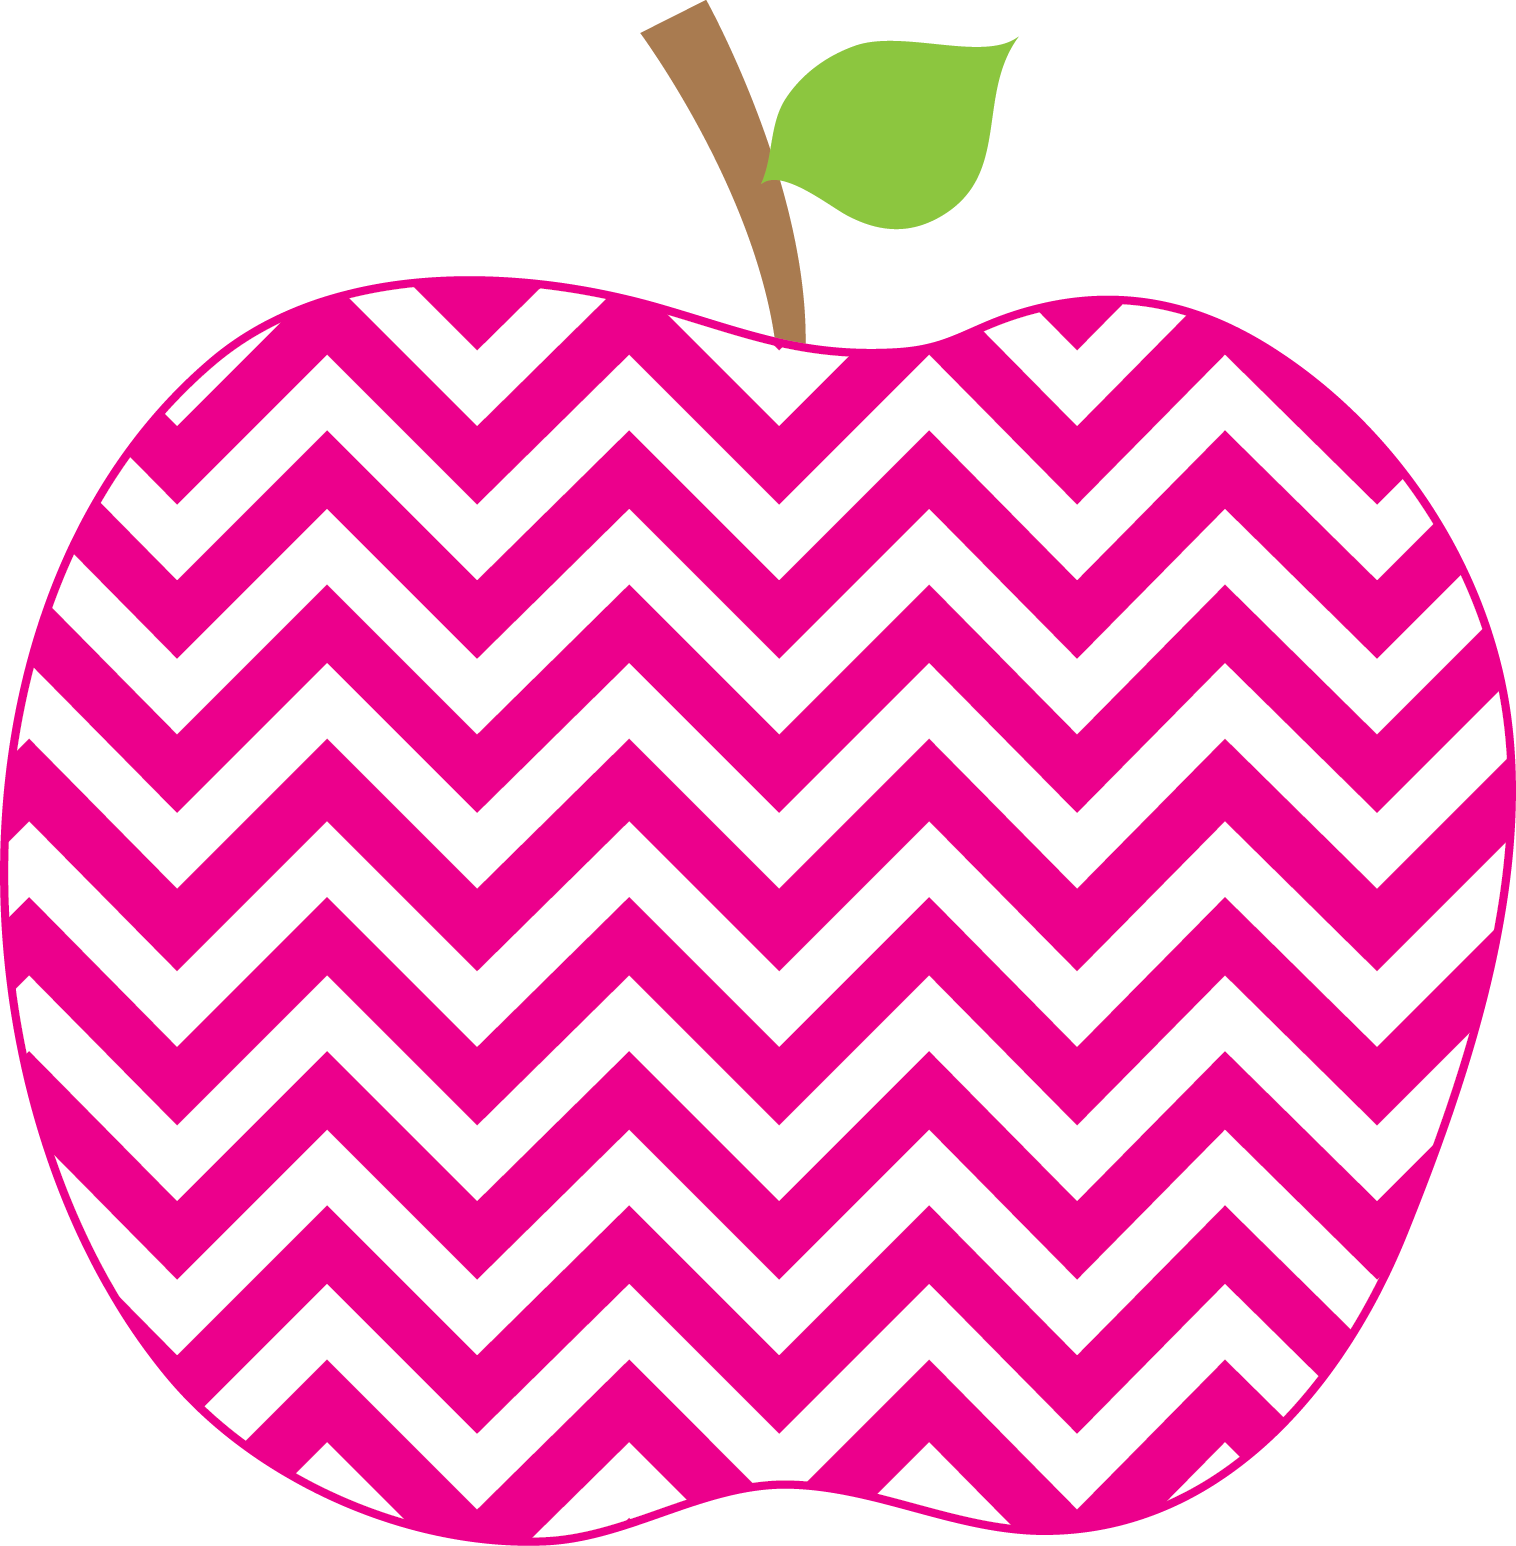 Cute apple back to school clipart library bybmg: Back to School Blog Hop: Take Care of That Teacher library